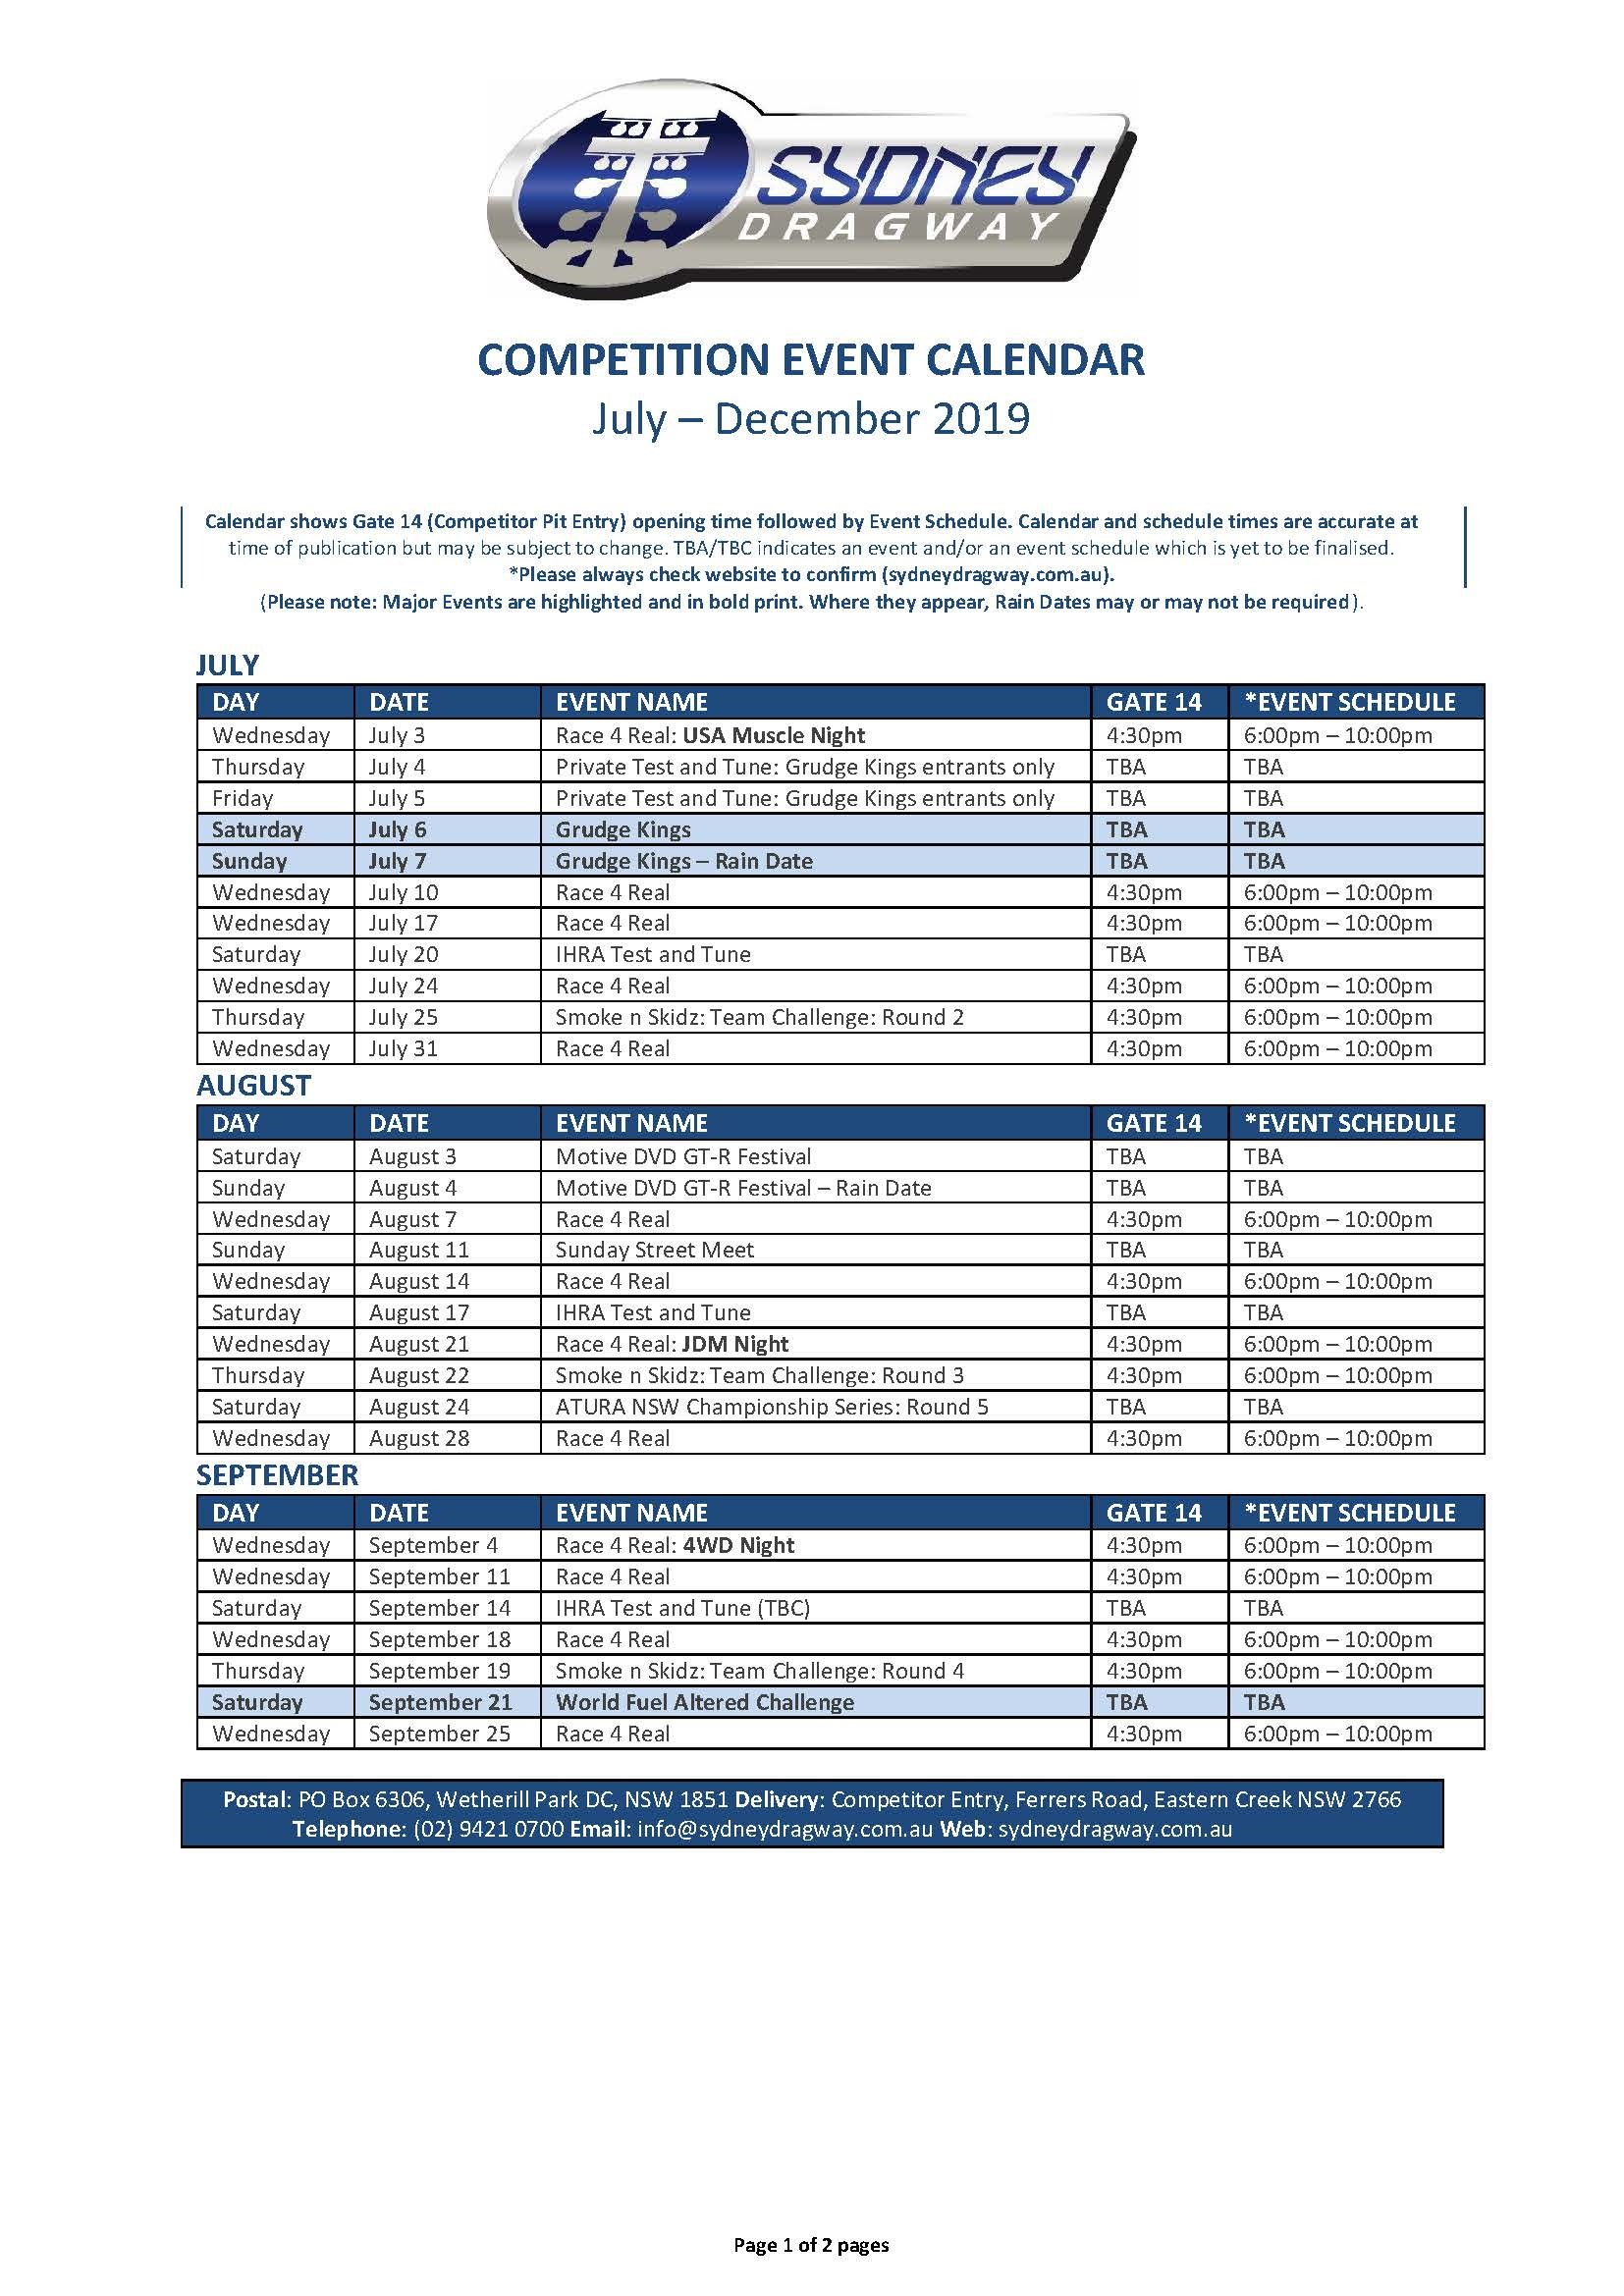 Printable Calendar - Sydney Dragway intended for Community Calender Sydney October 2019